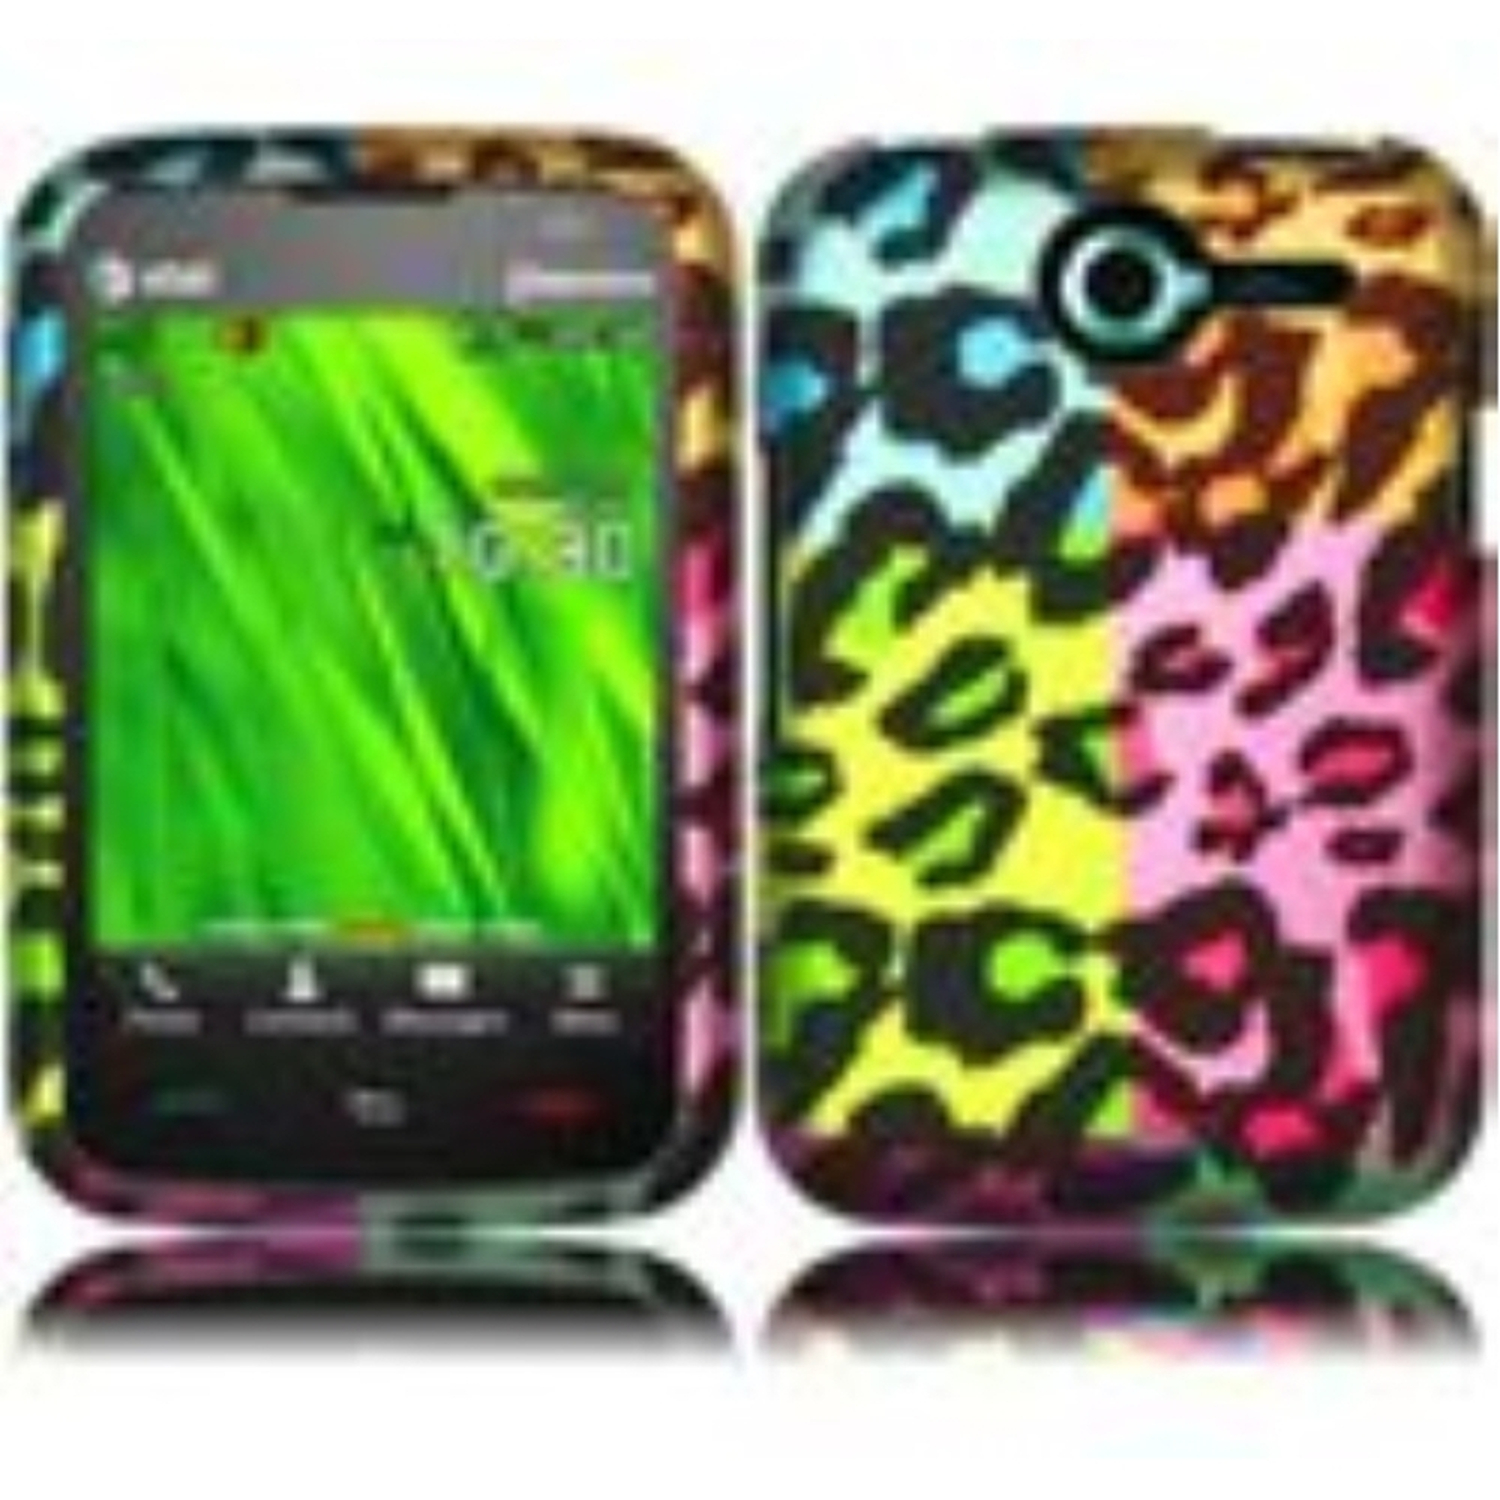 Insten For Pantech Renue P6030(AT&T) Rubberized Design Phone Hard Case Colorful Leopard